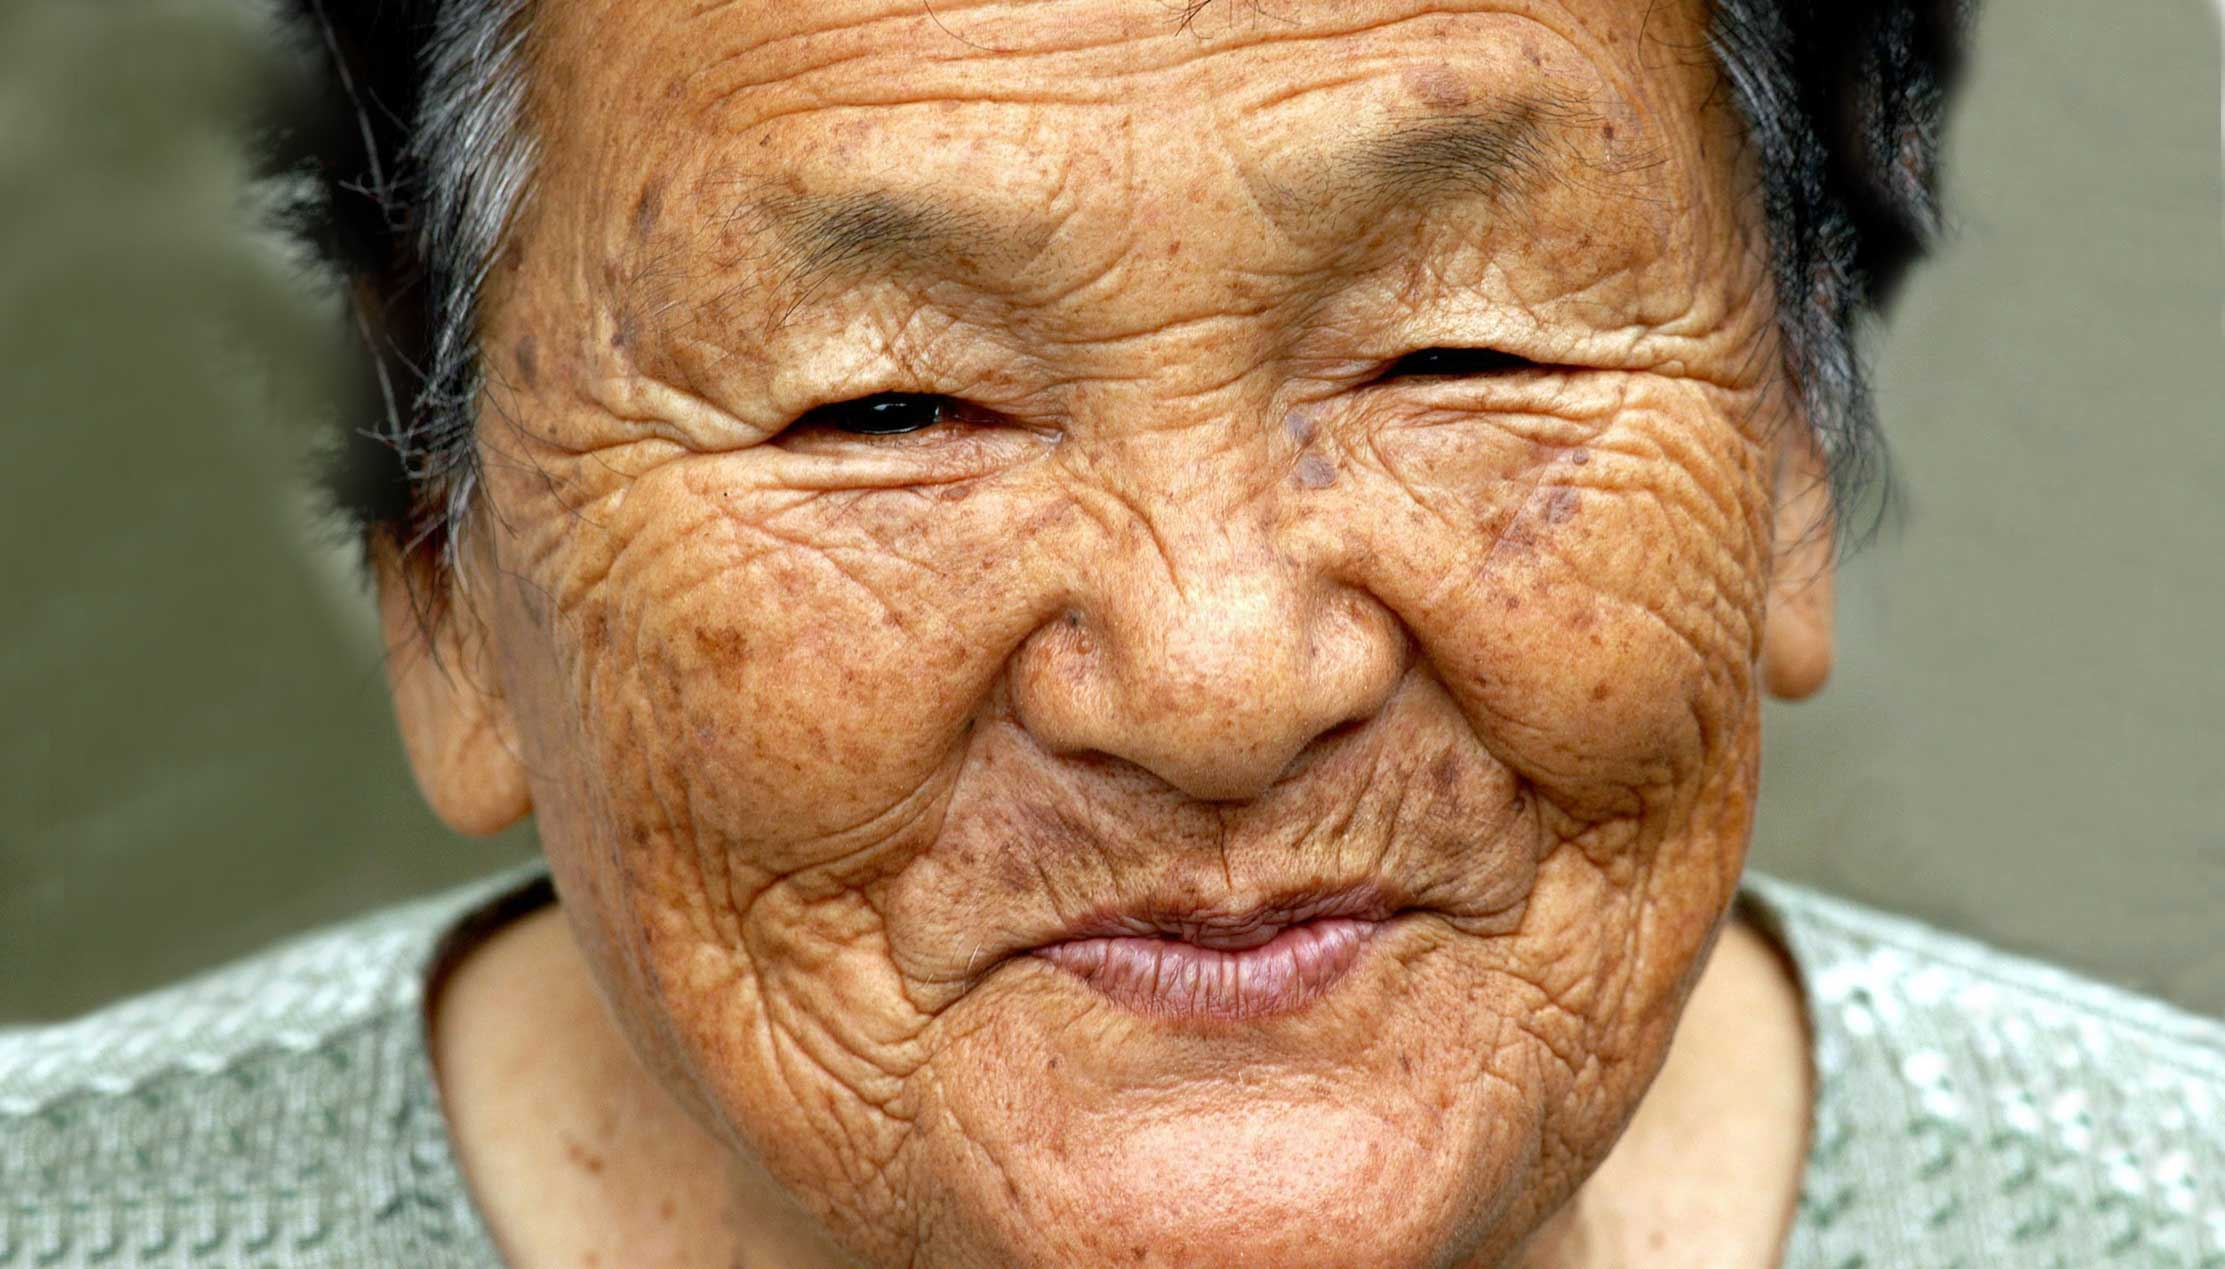 woman japanese old